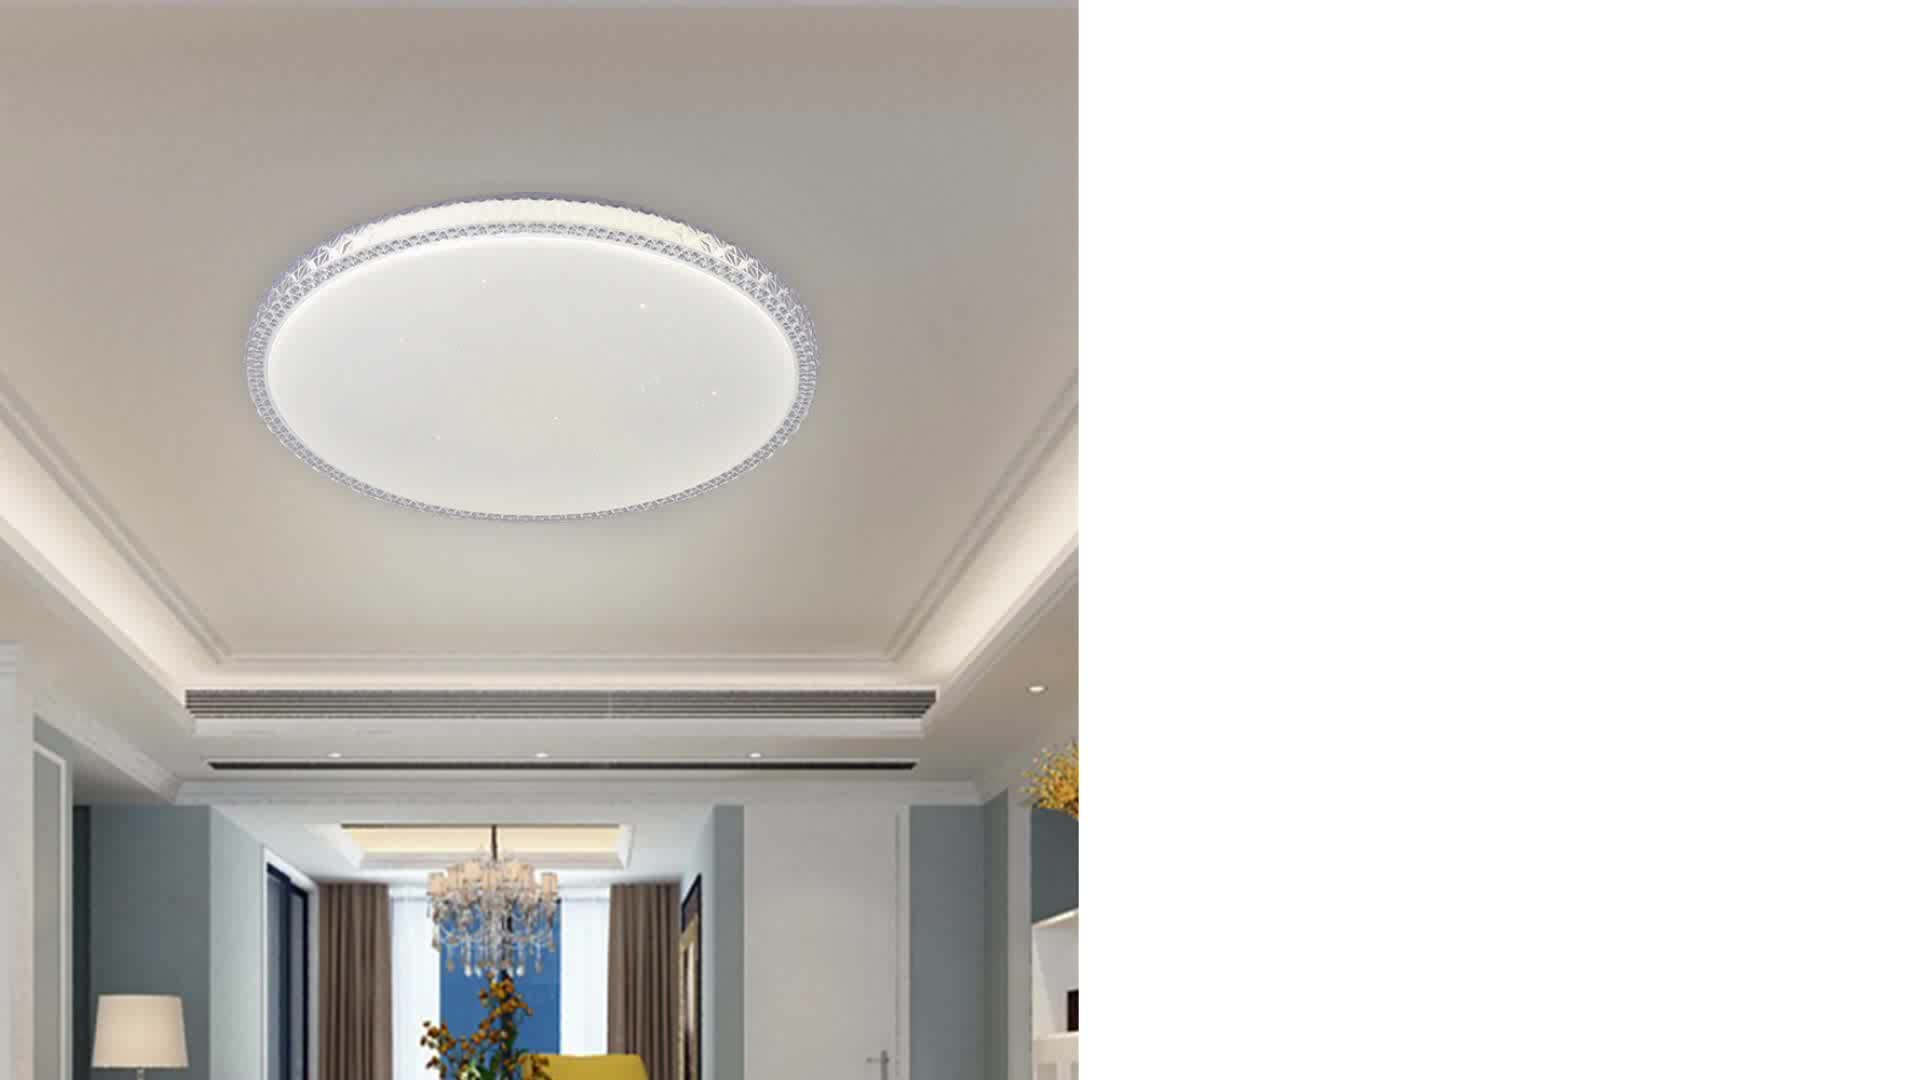 Infrared RGB LED CCT Change Ceiling Light Envis Colorful Round Star Acrylic 36W 48W Ceiling Light for Living Room Bedroom Office